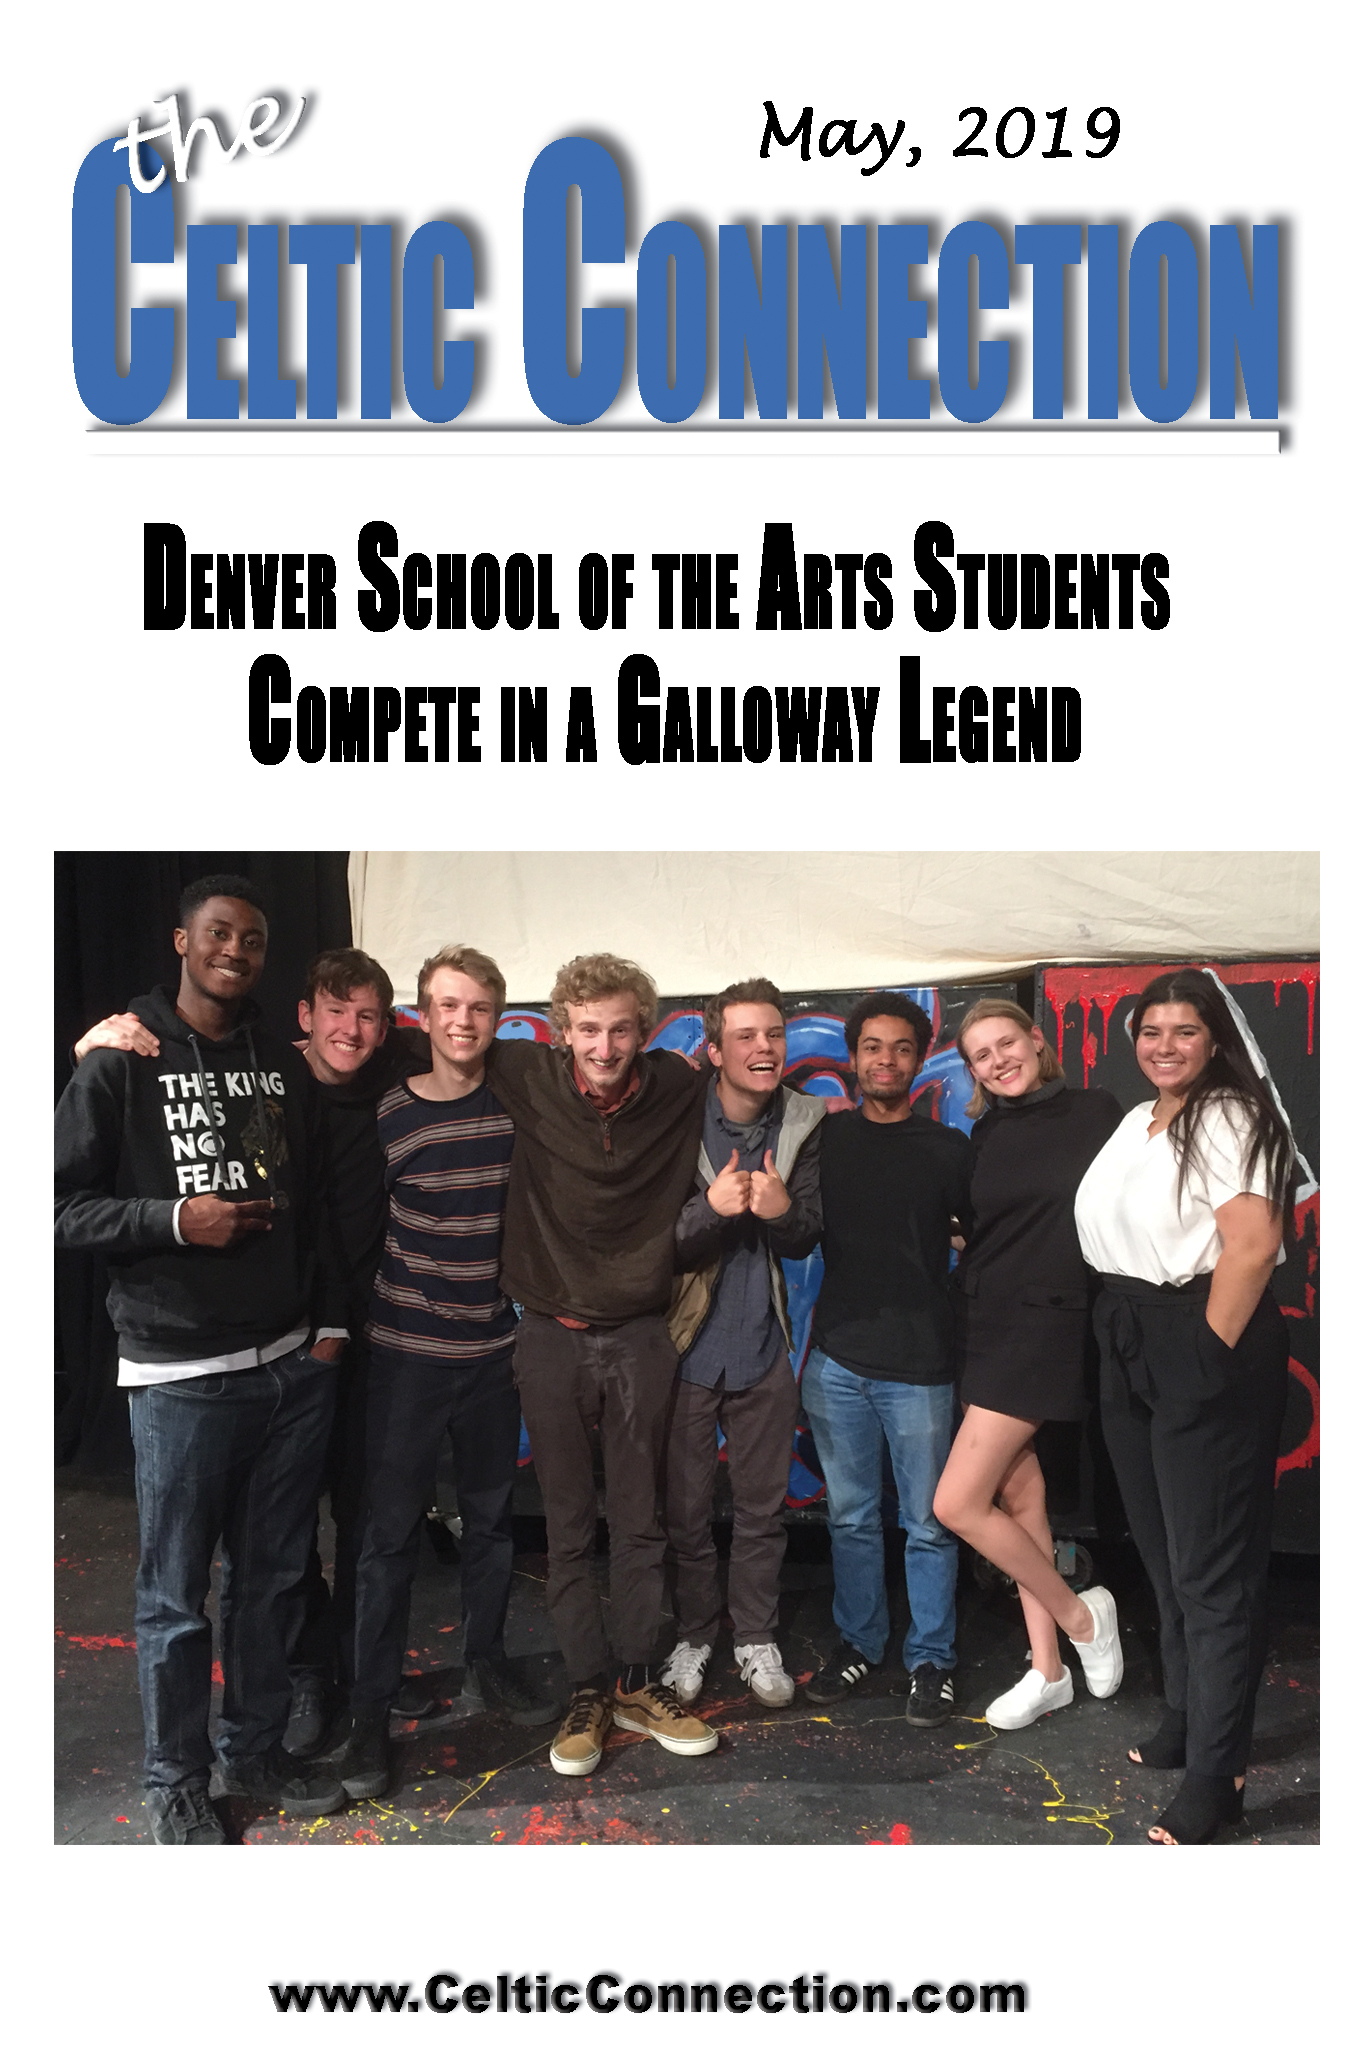 Congratulations to the Winners of the Second Annual R.L. Stevenson Competition at Denver School of the Arts